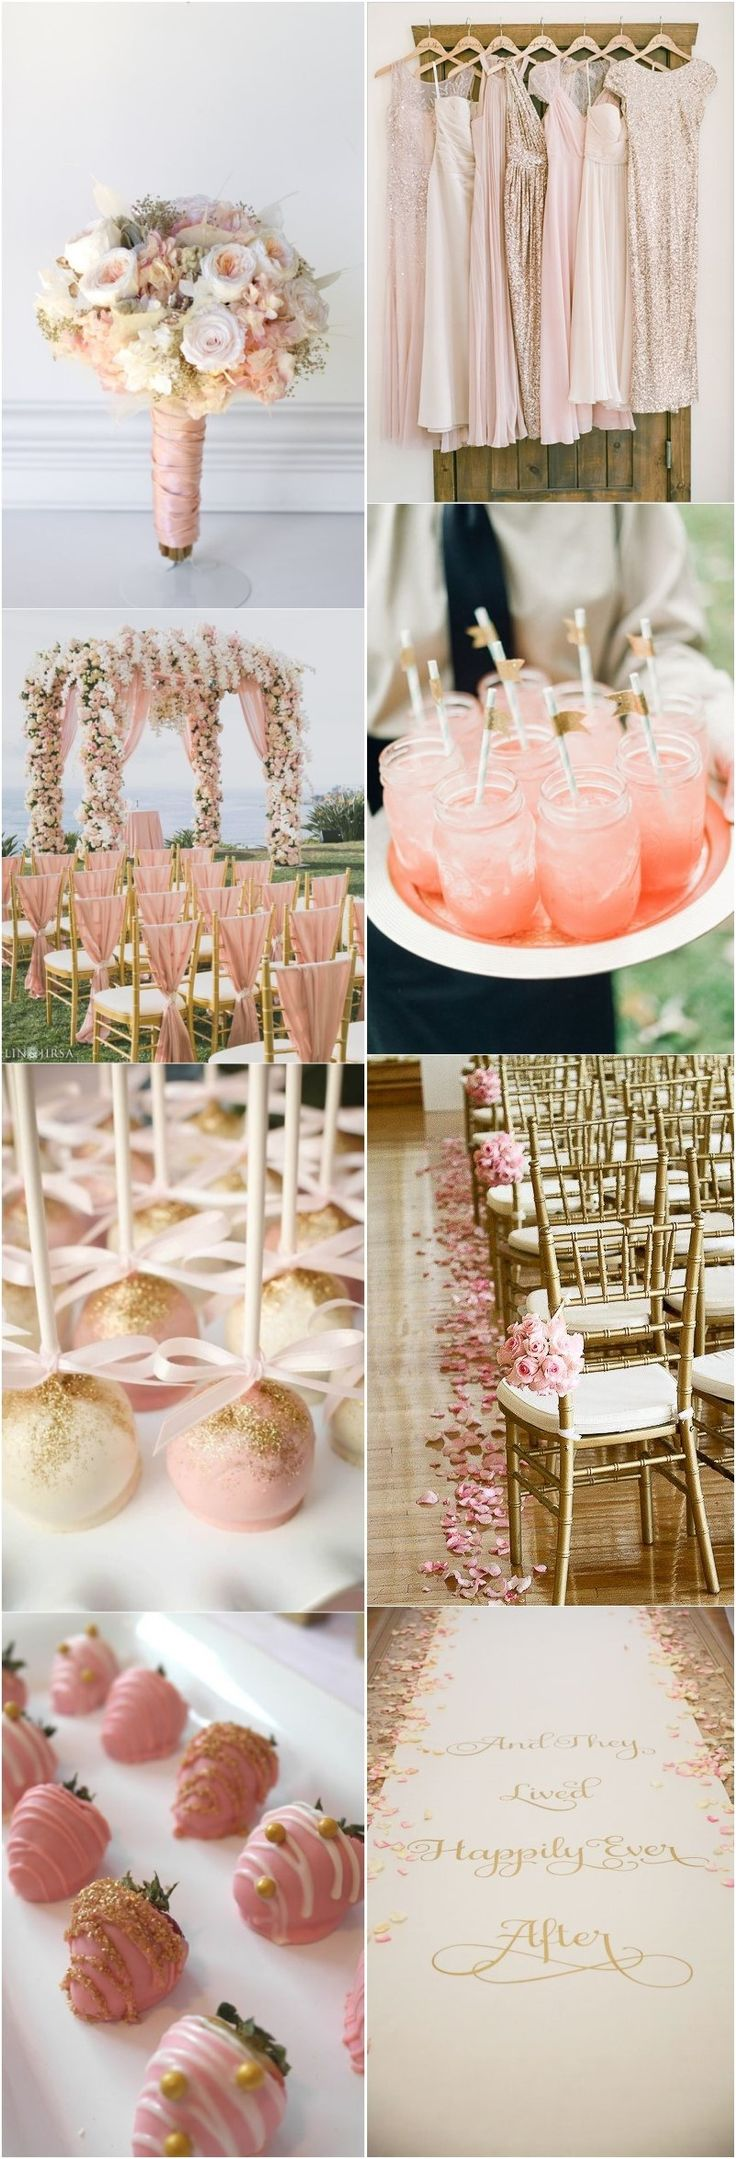 Wedding Colors » 21 Totally Elegant Pink and Gold Wedding Color Ideas » ❤️ More: http://www.weddinginclude.com/2017/07/totally-elegant-pink-and-gold-wedding-color-ideas/